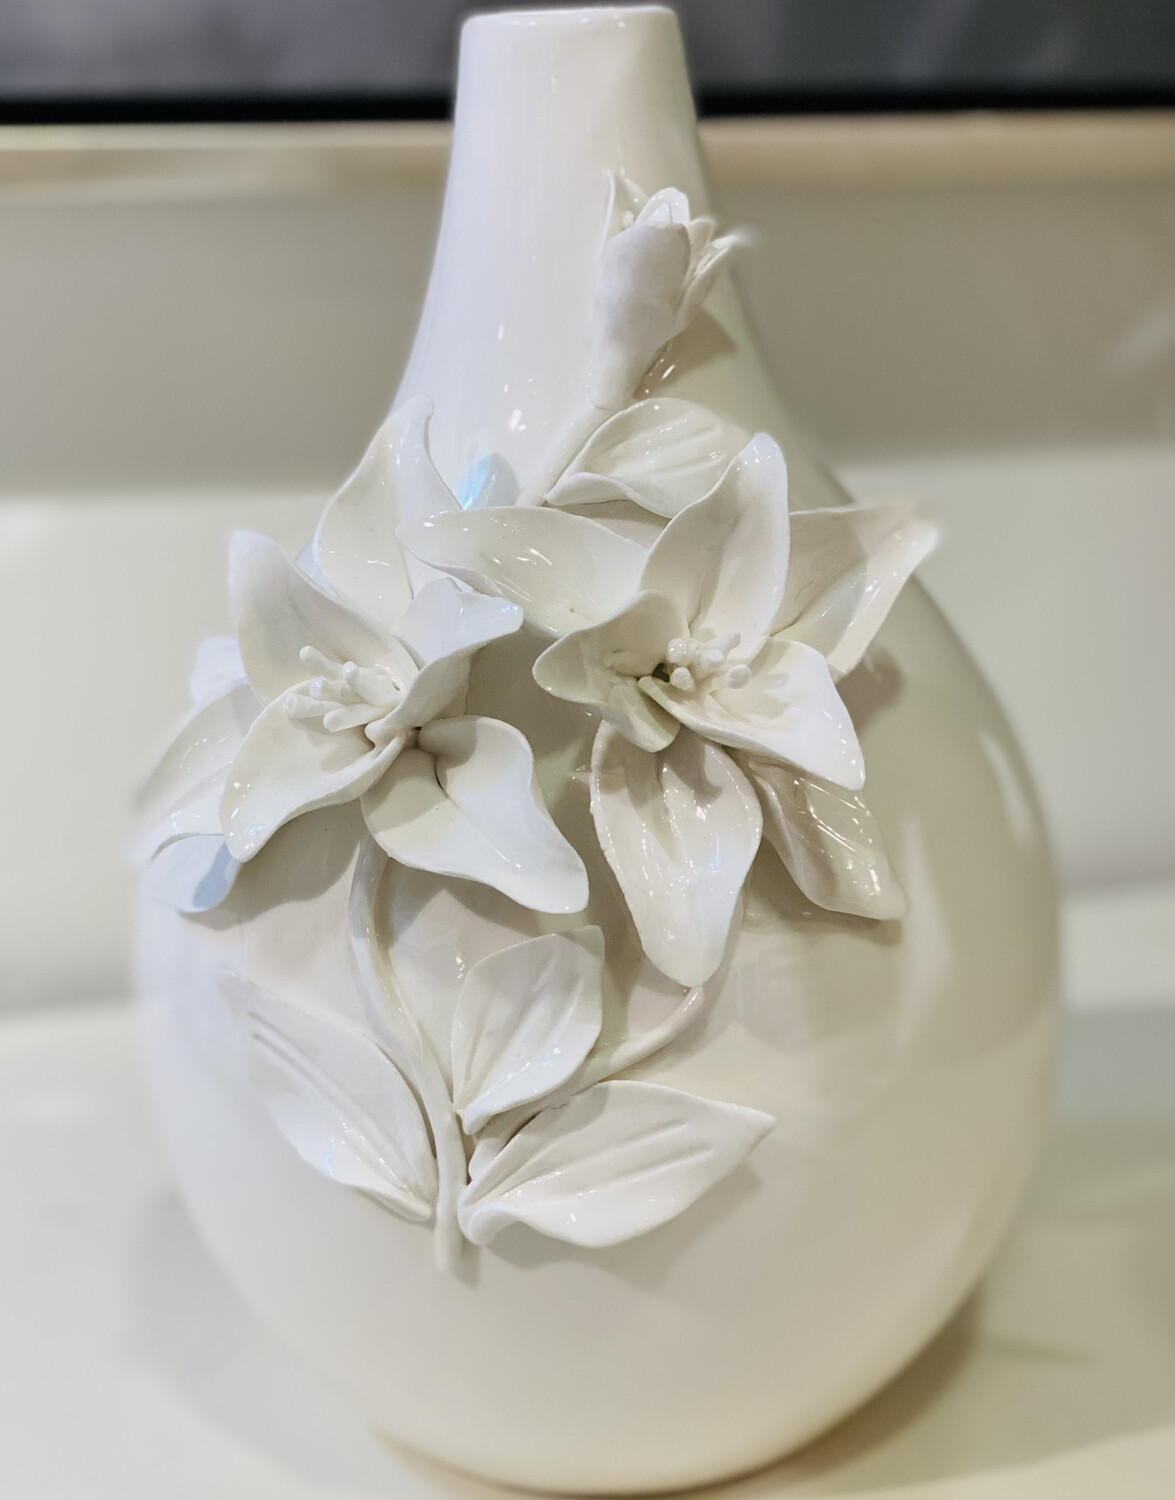 White Raised Floral Vase - DEB